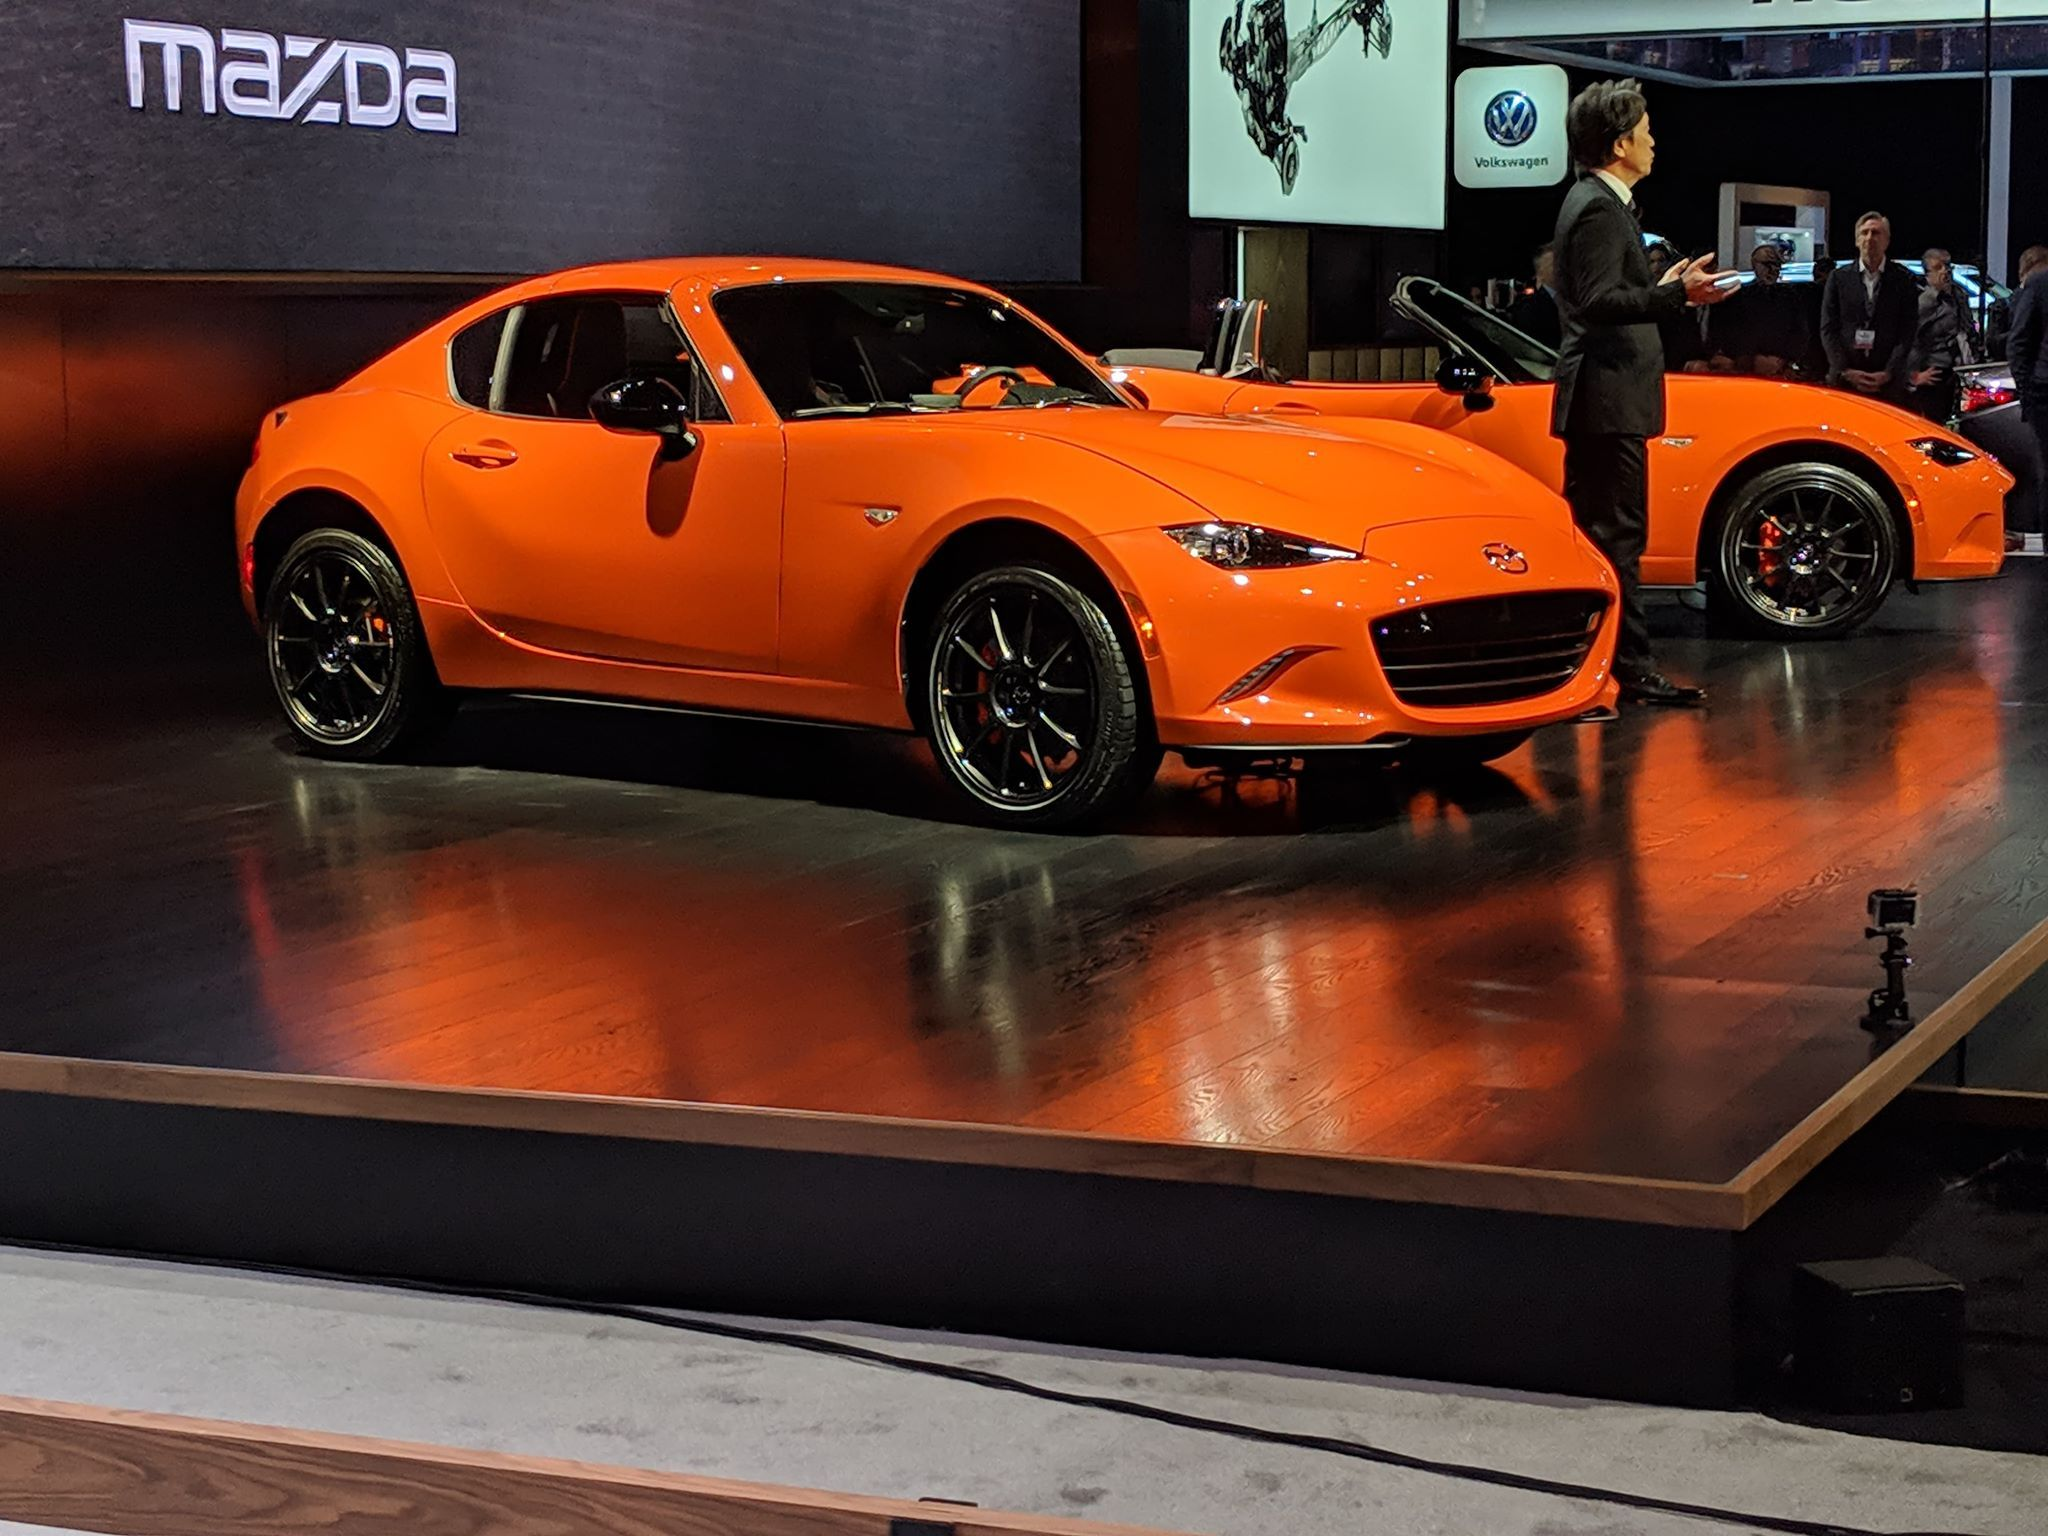 It's Official - 30th Anniversary Edition at the Chicago Auto Show